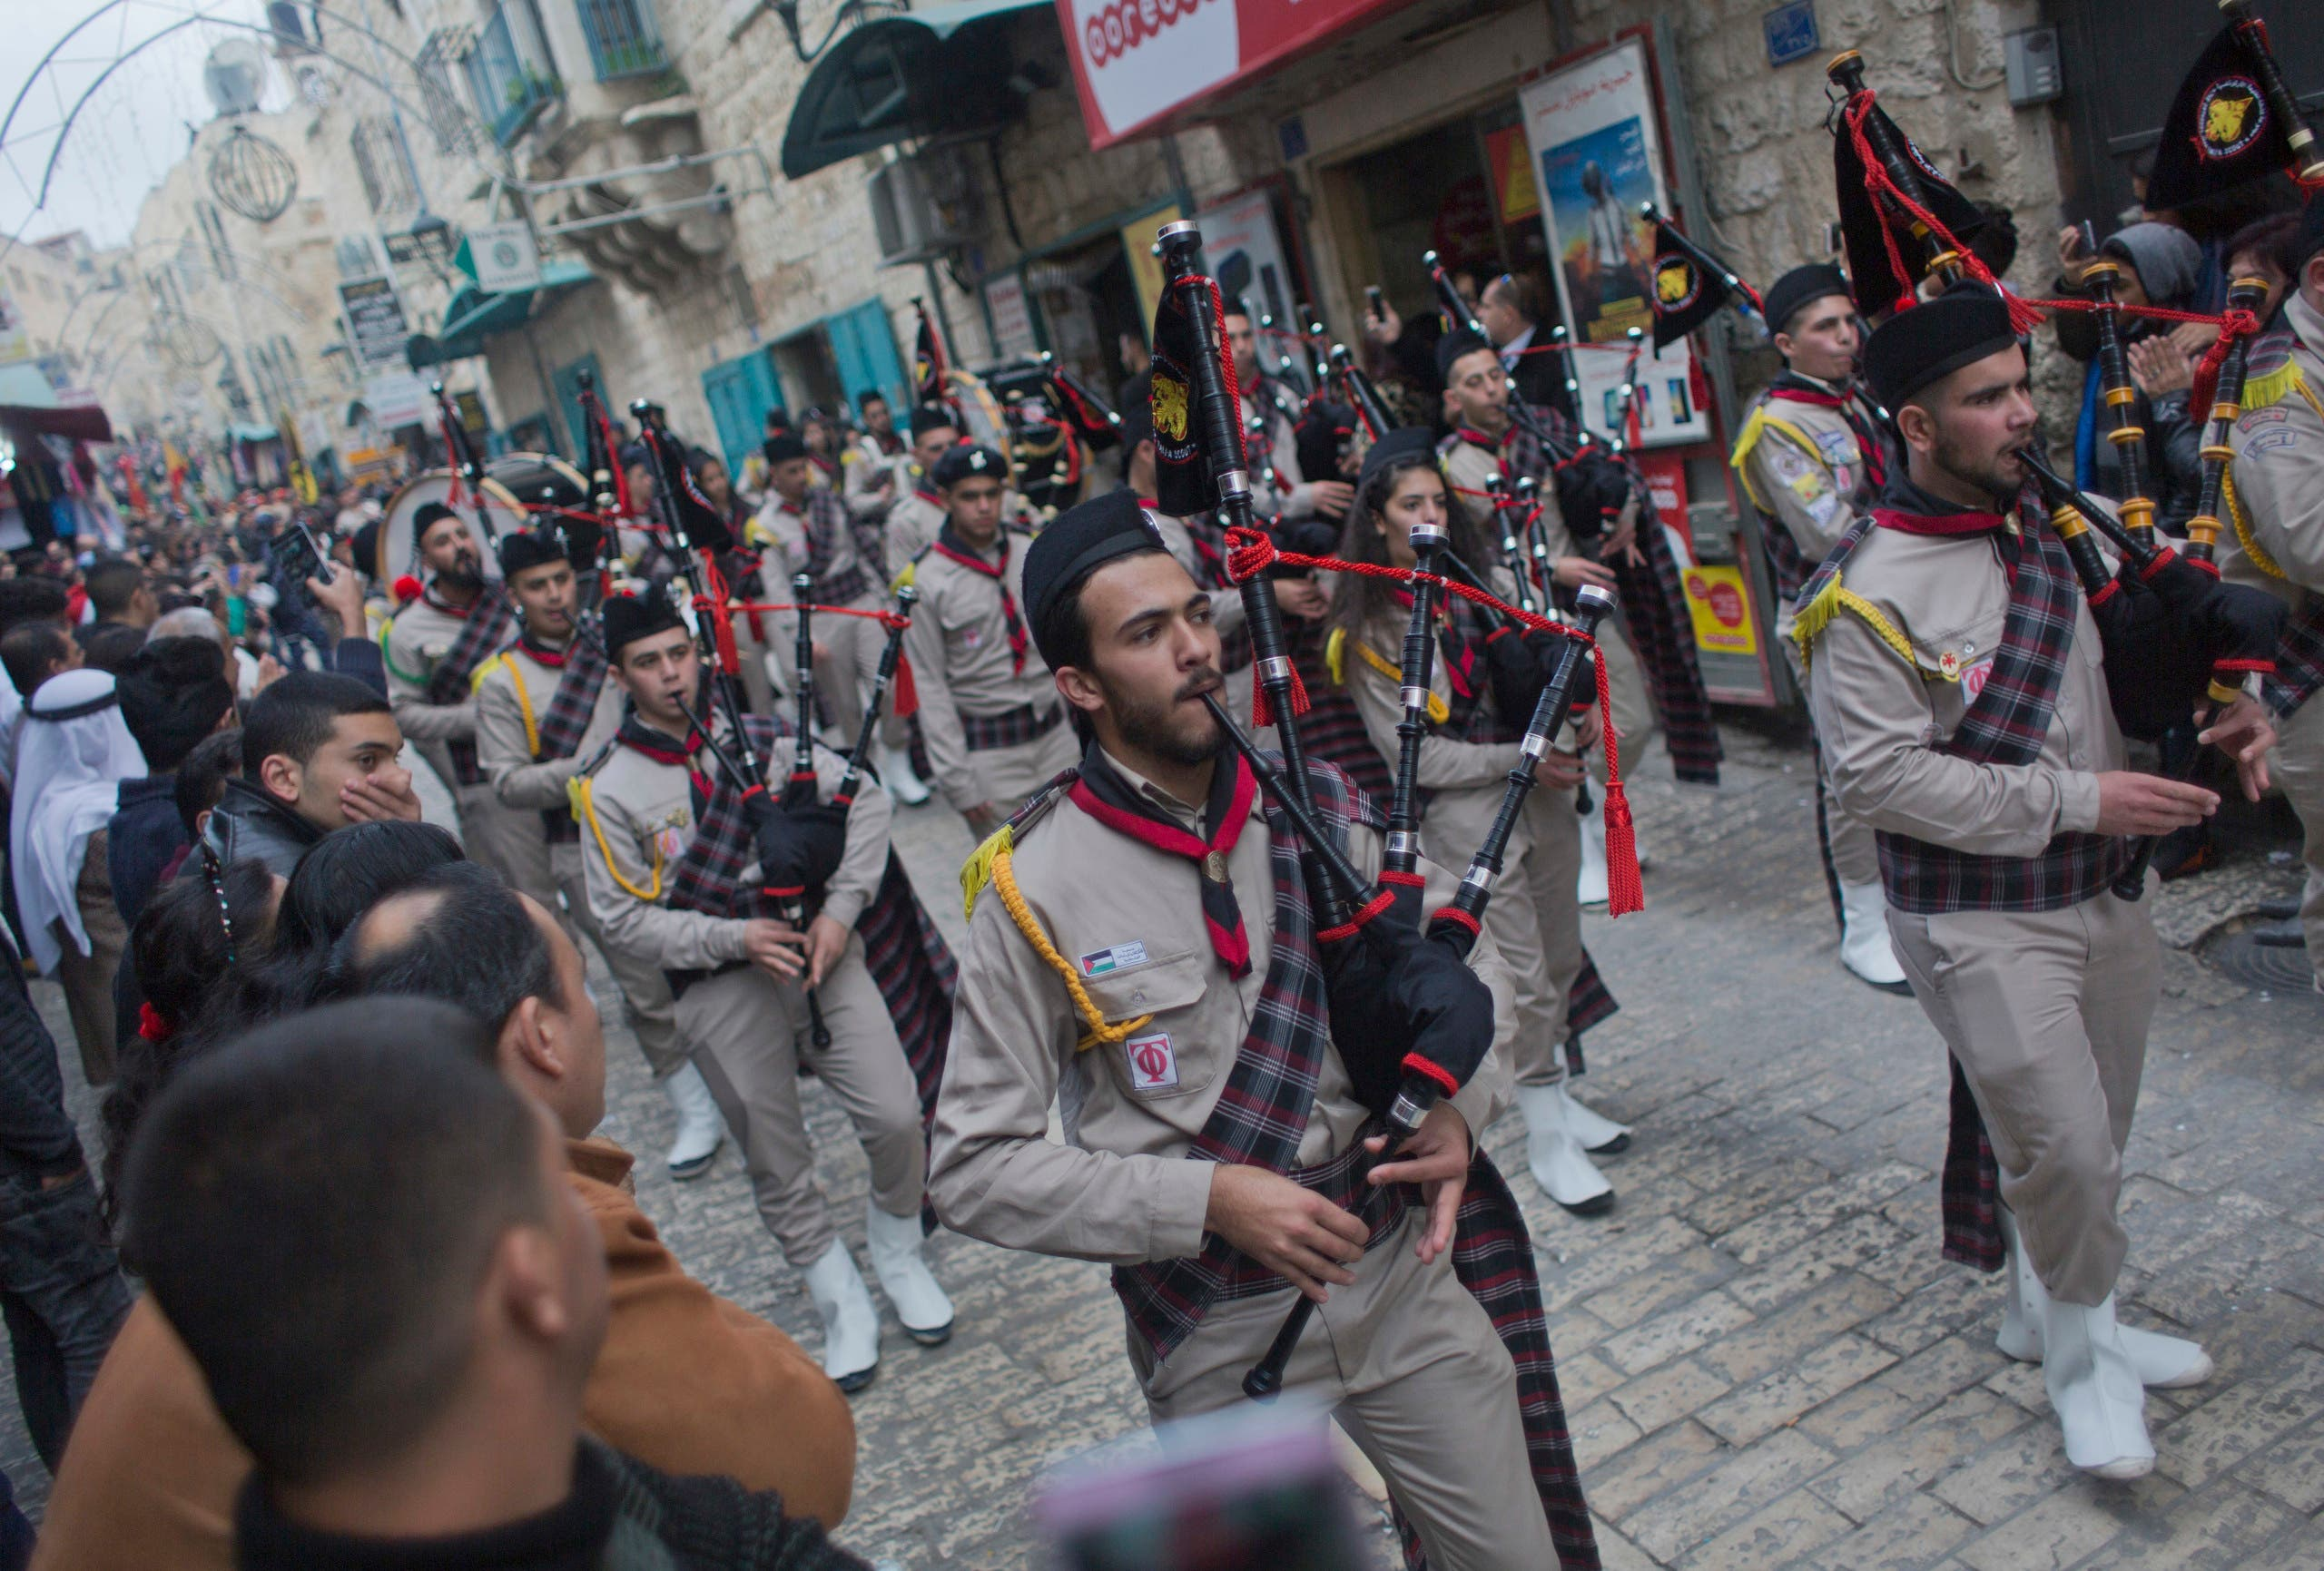 Palestinian scouts march through Bethlehem on December 24, 2018. (File photo: AP)